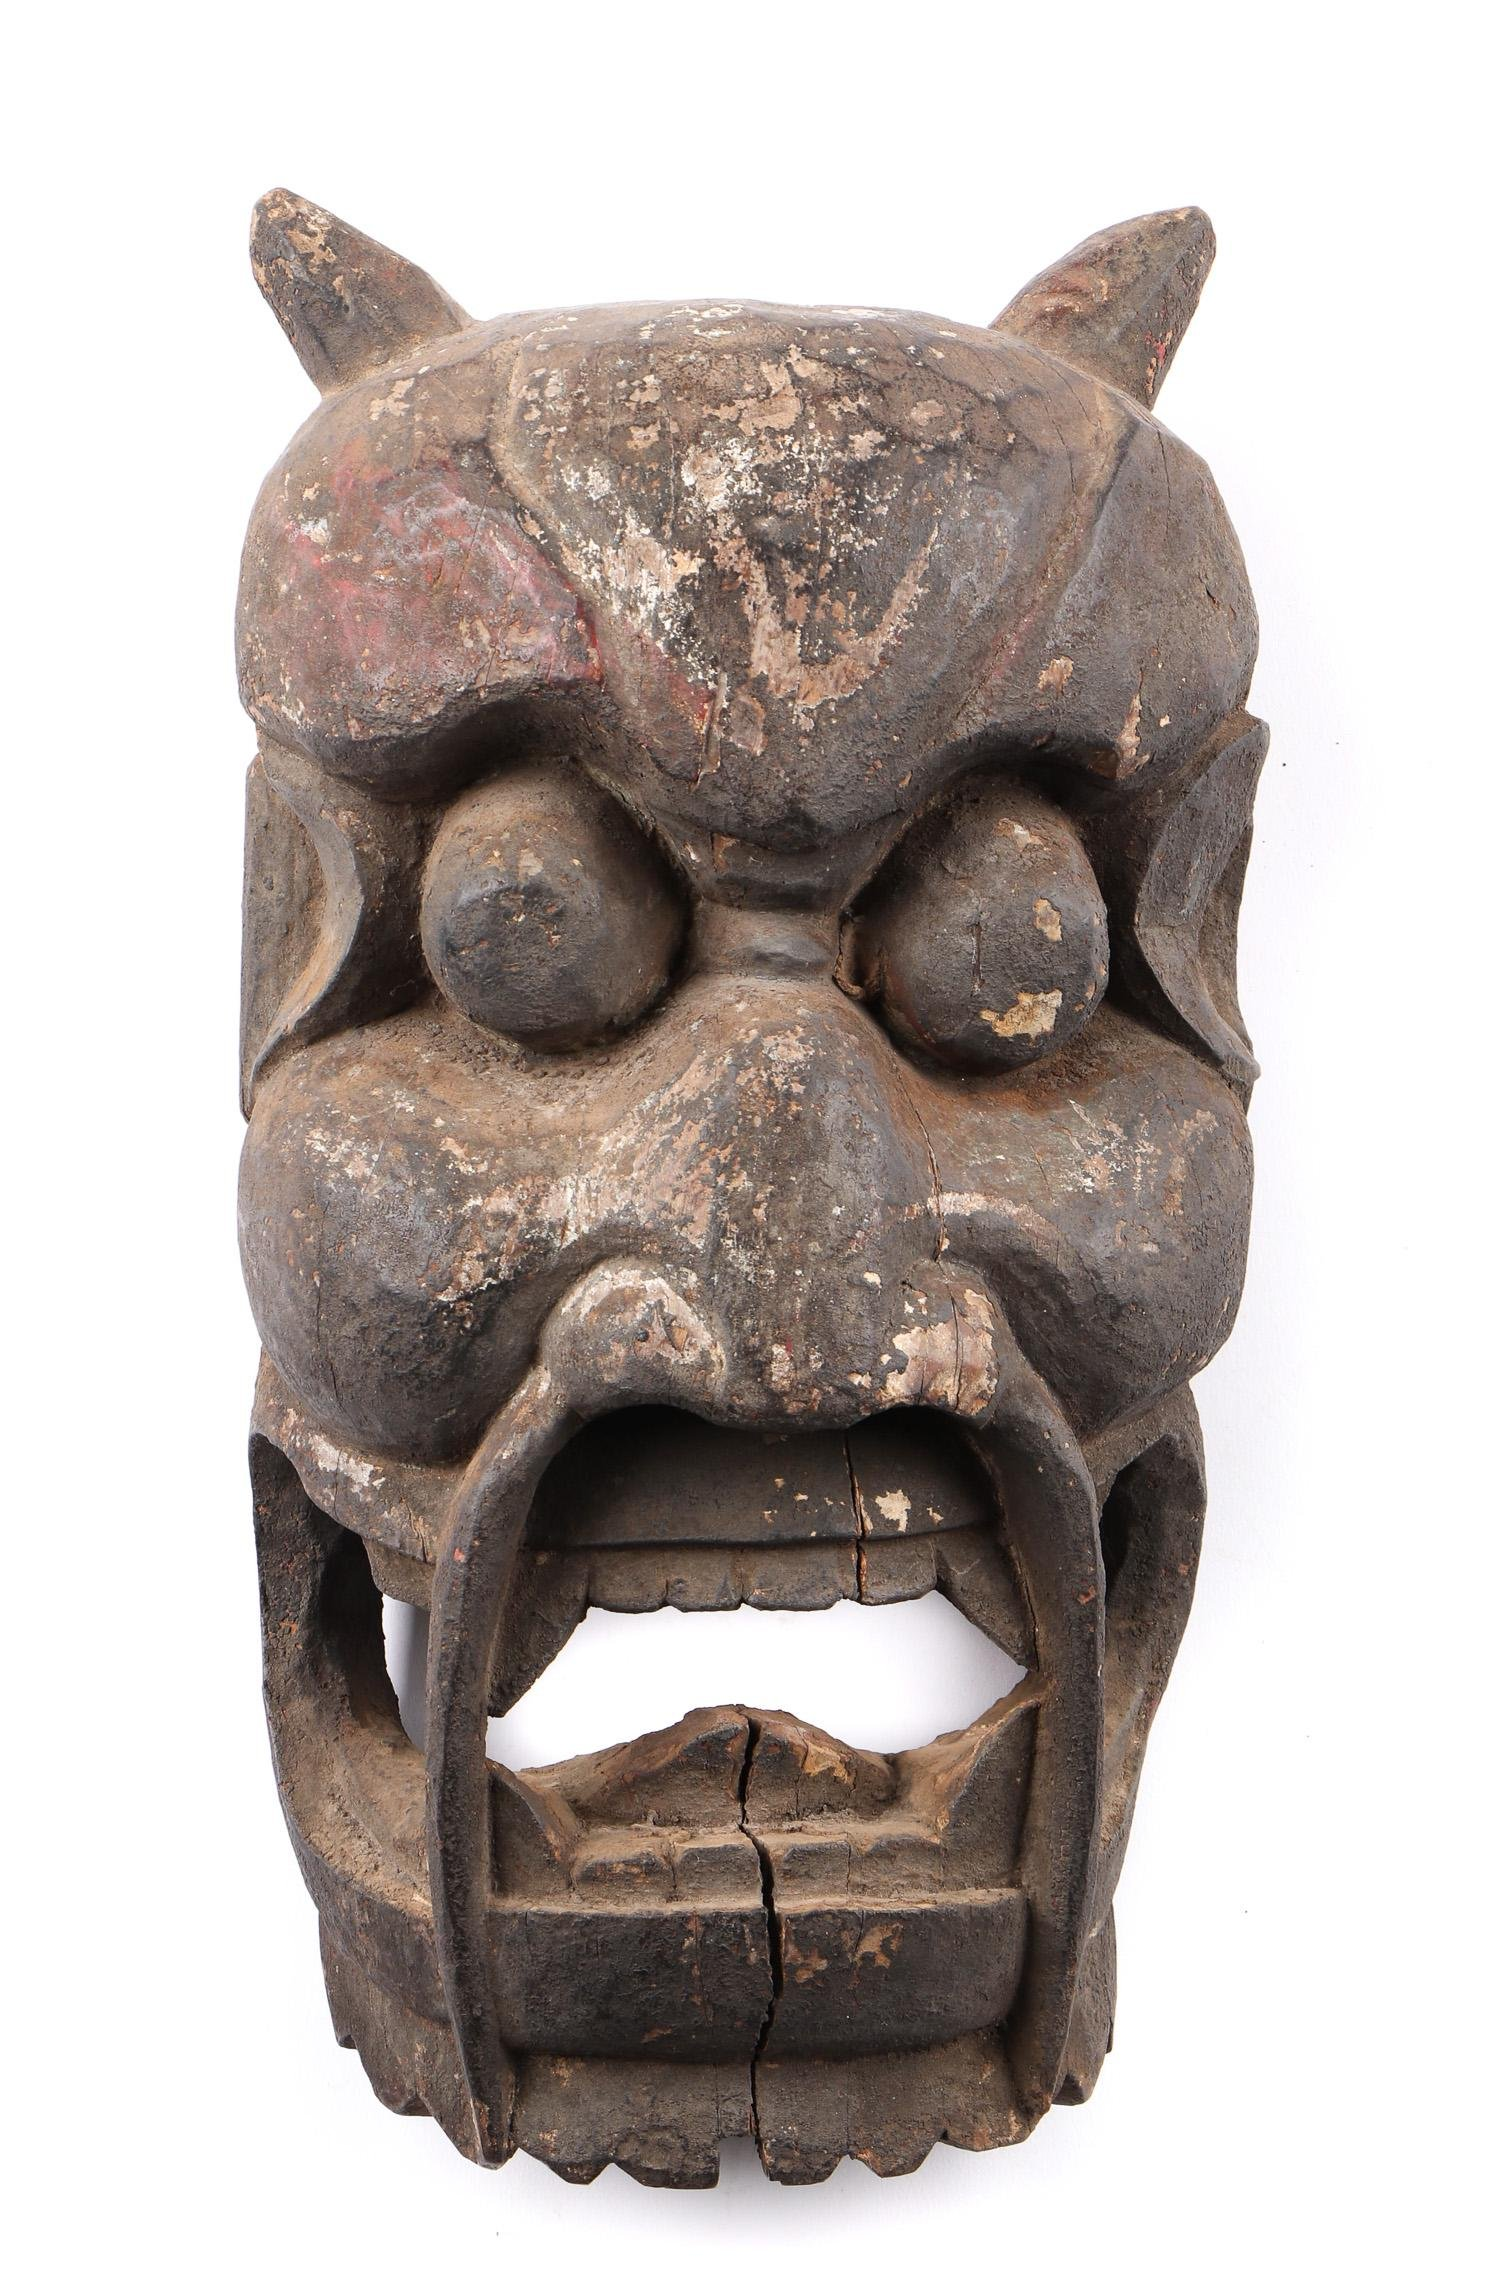 Nuo Carved Wood Mask, China 18th/19th c.